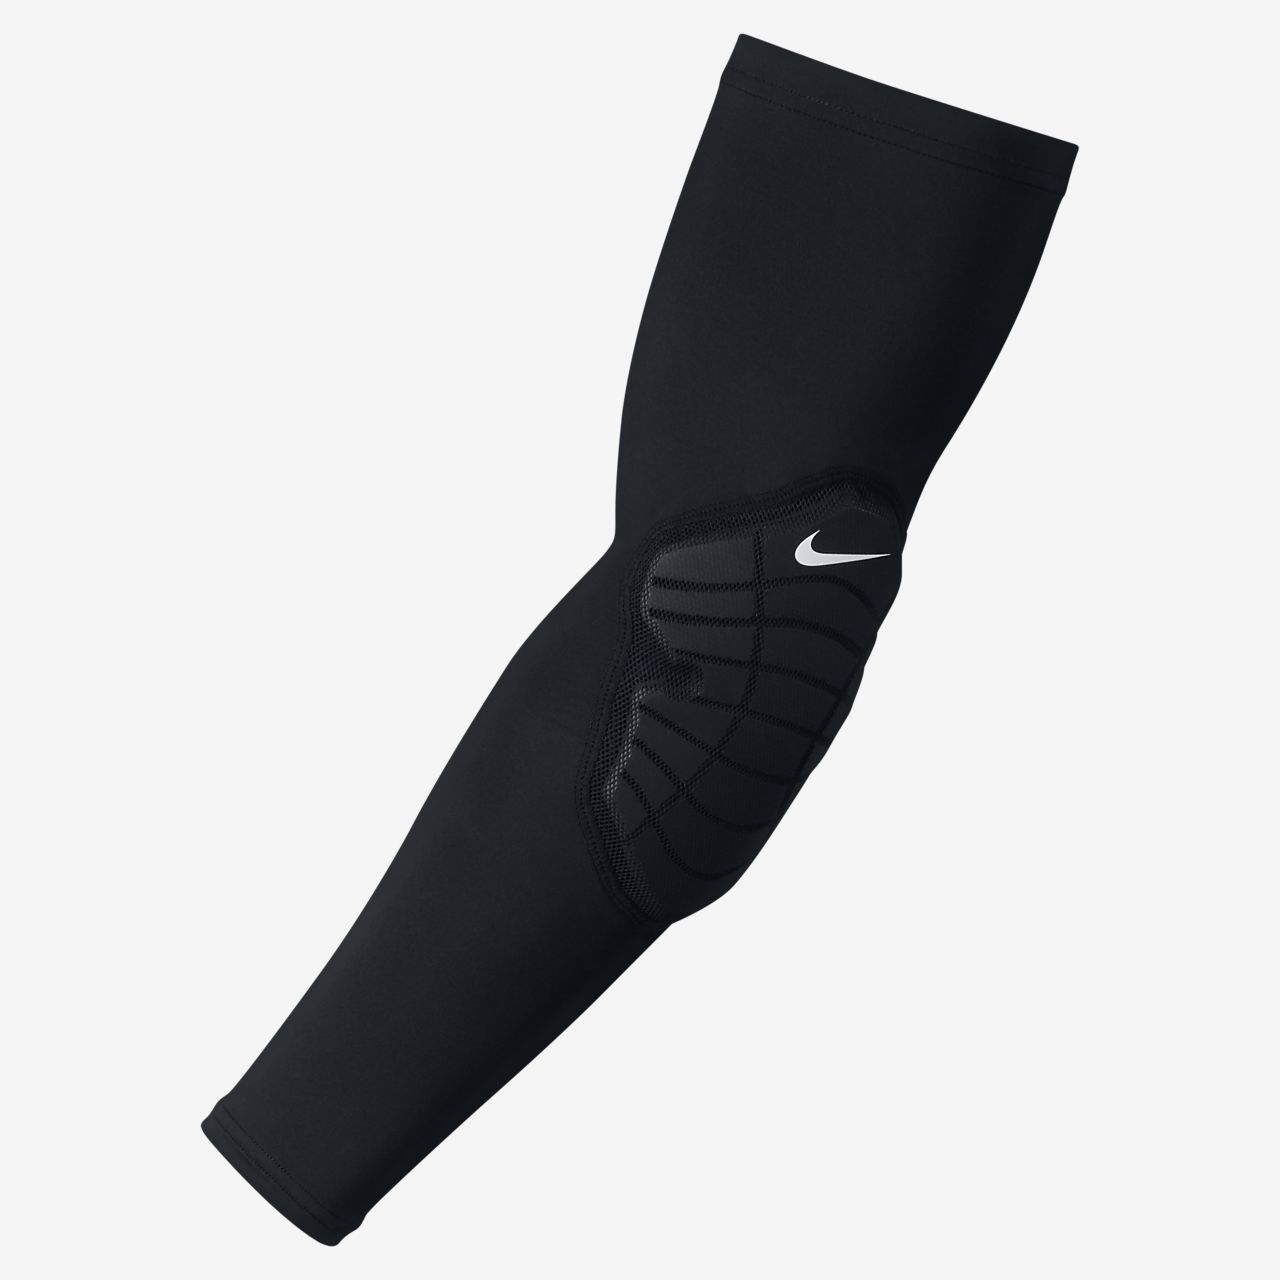 03ca26f2 Nike Compression Shirts With Pads